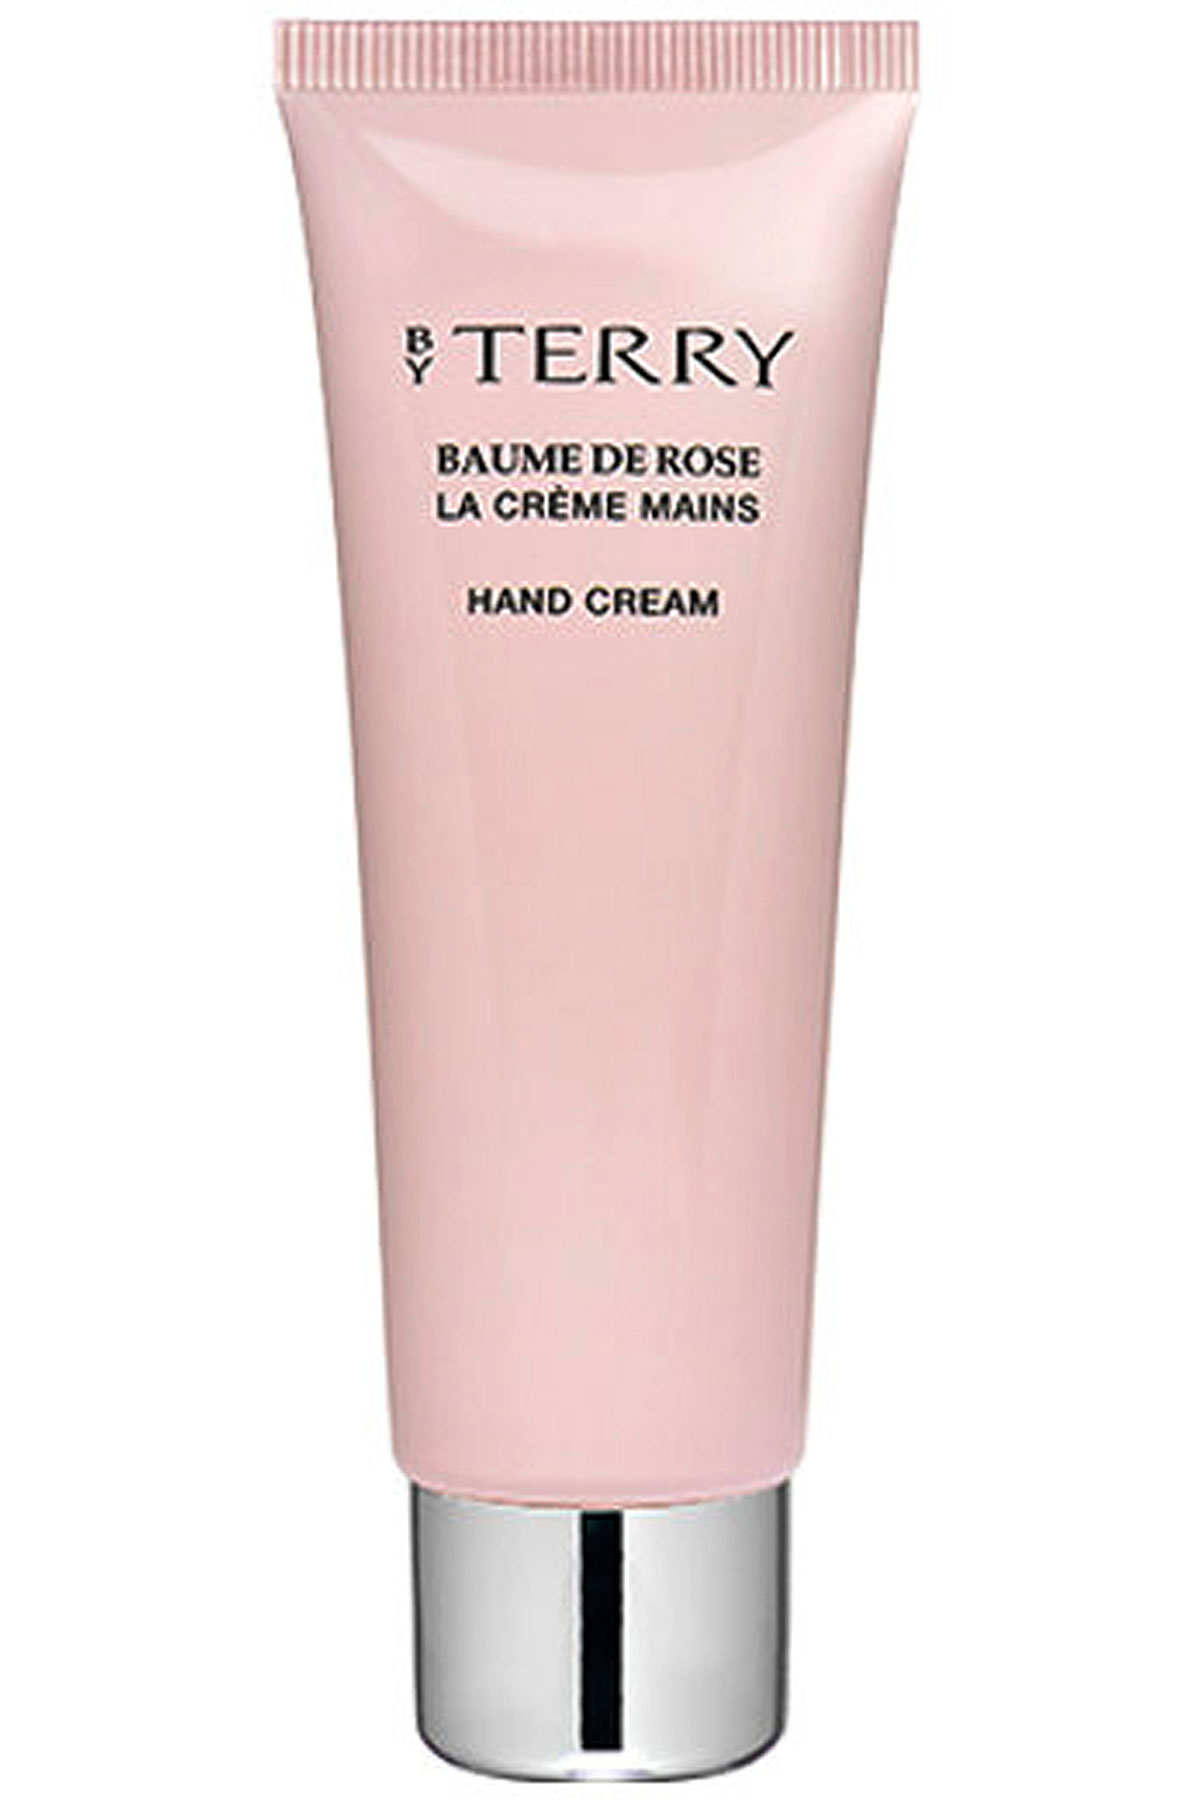 By Terry Beauty for Women On Sale, Baume De Rose - Hand Cream - 200 Ml, 2019, 75 gr